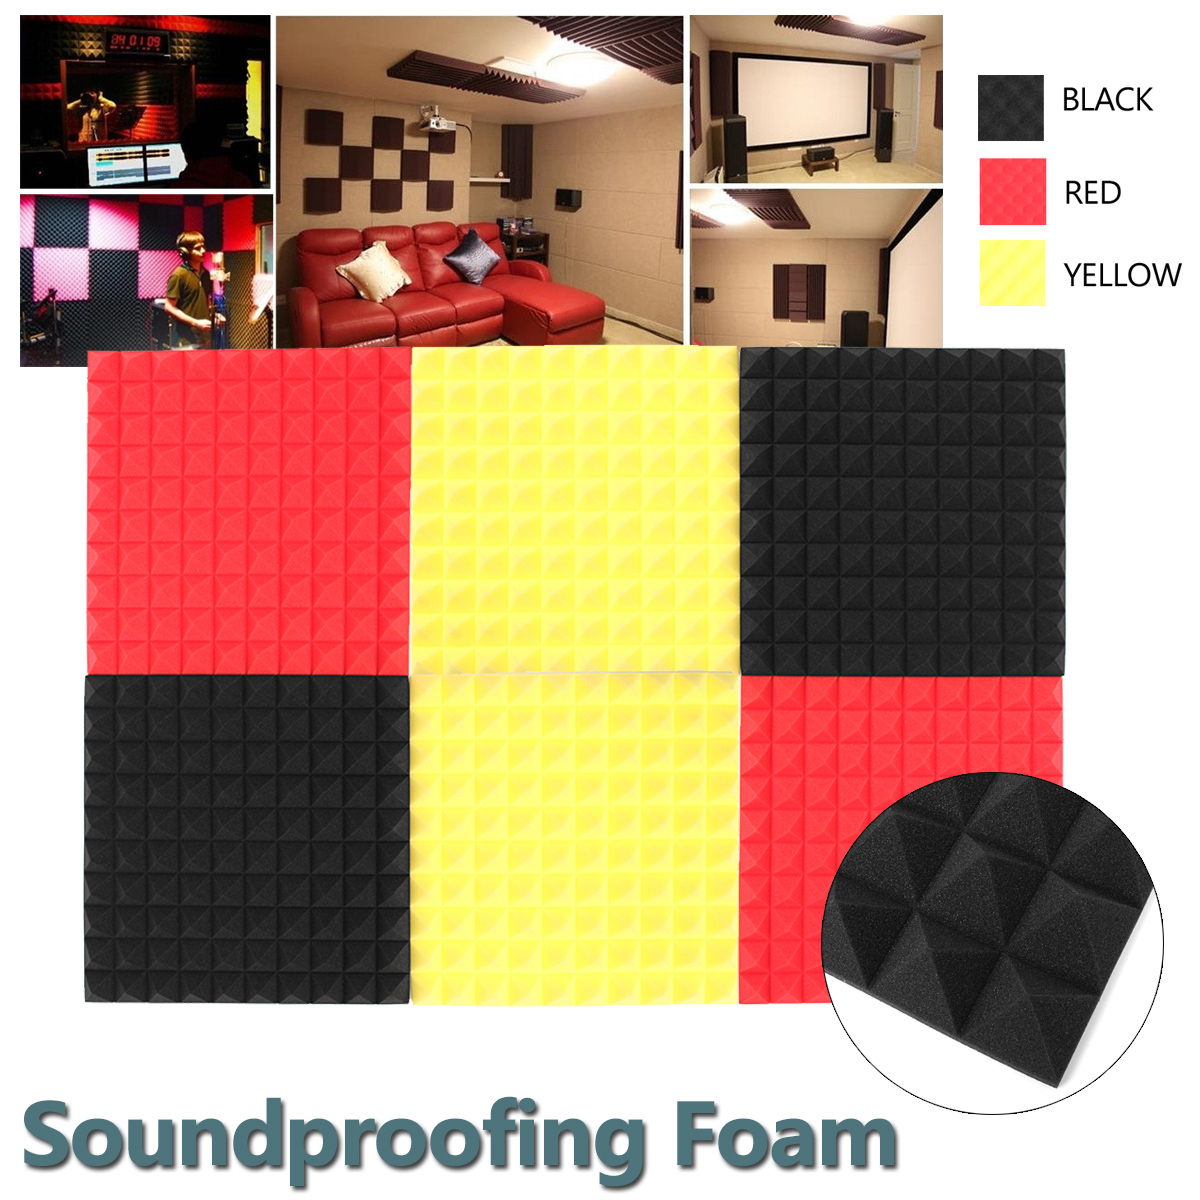 50x50x4cm Acoustic Foam Soundproofing Treatment Sound Proofing Foam Deadening Insulation KTV Studio Room Absorption Wedge Tiles sound absorption coefficient analysis